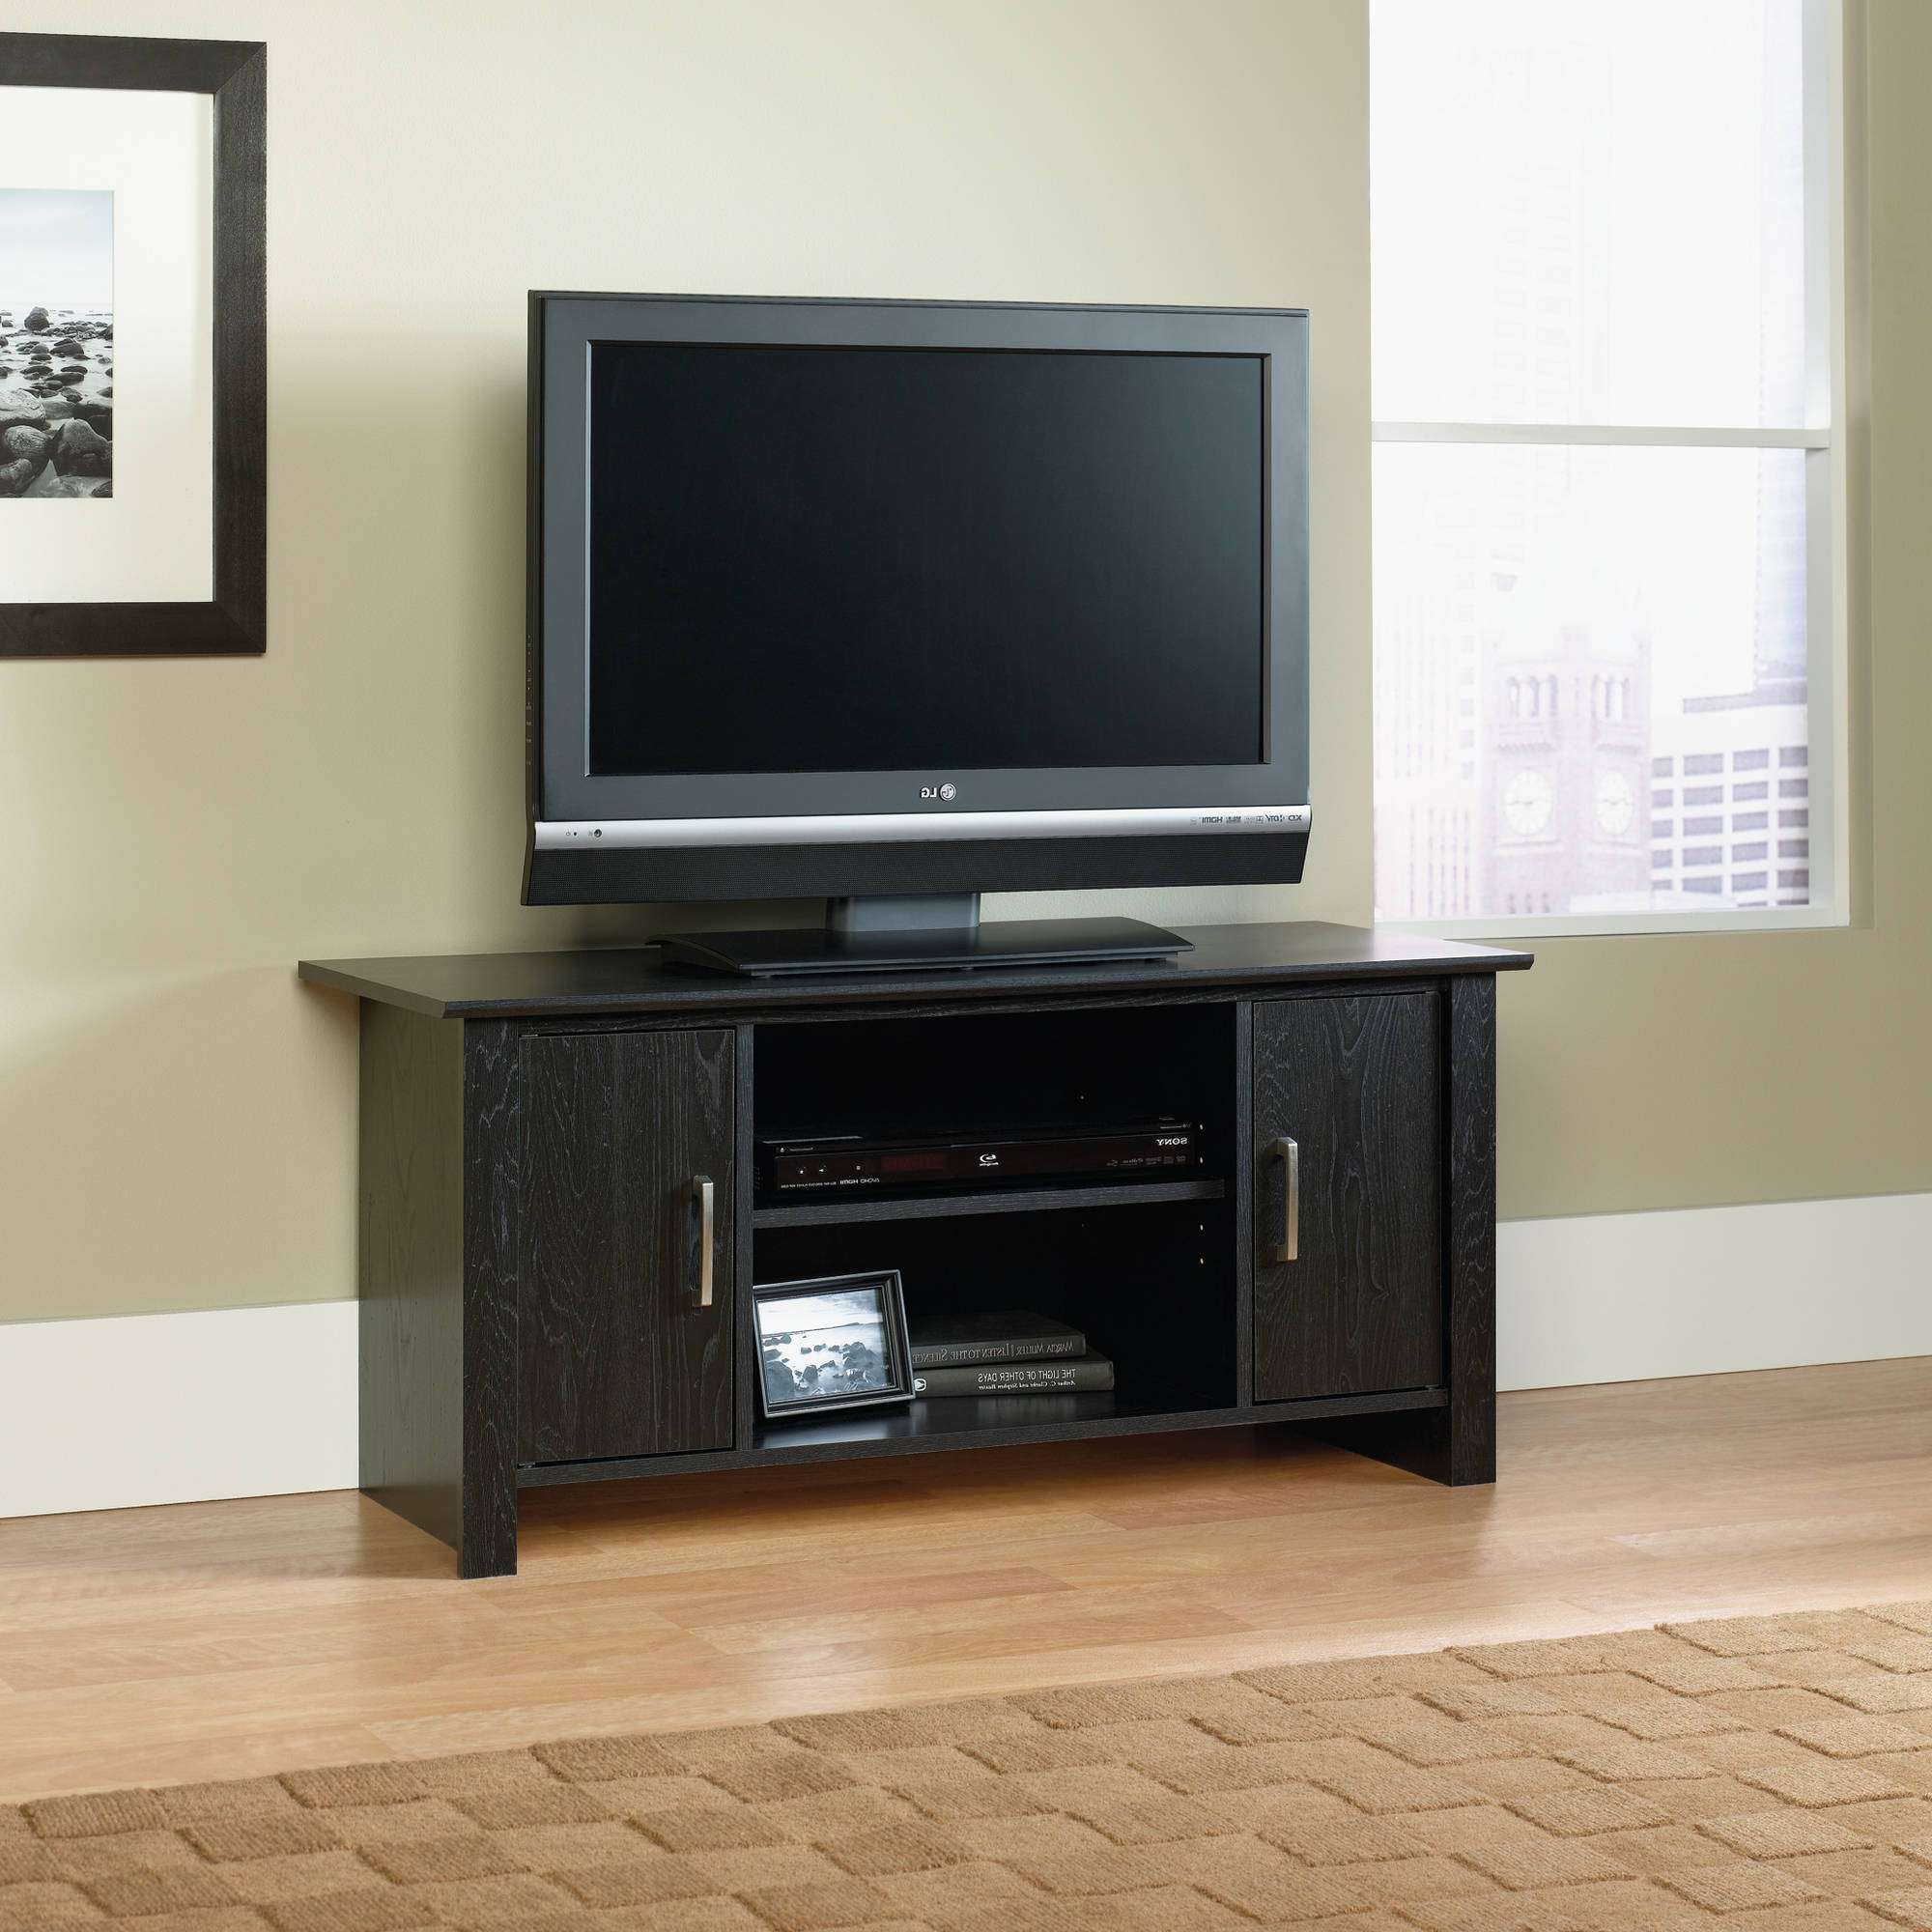 Tv Stands & Entertainment Centers – Walmart Pertaining To Compact Corner Tv Stands (View 14 of 15)